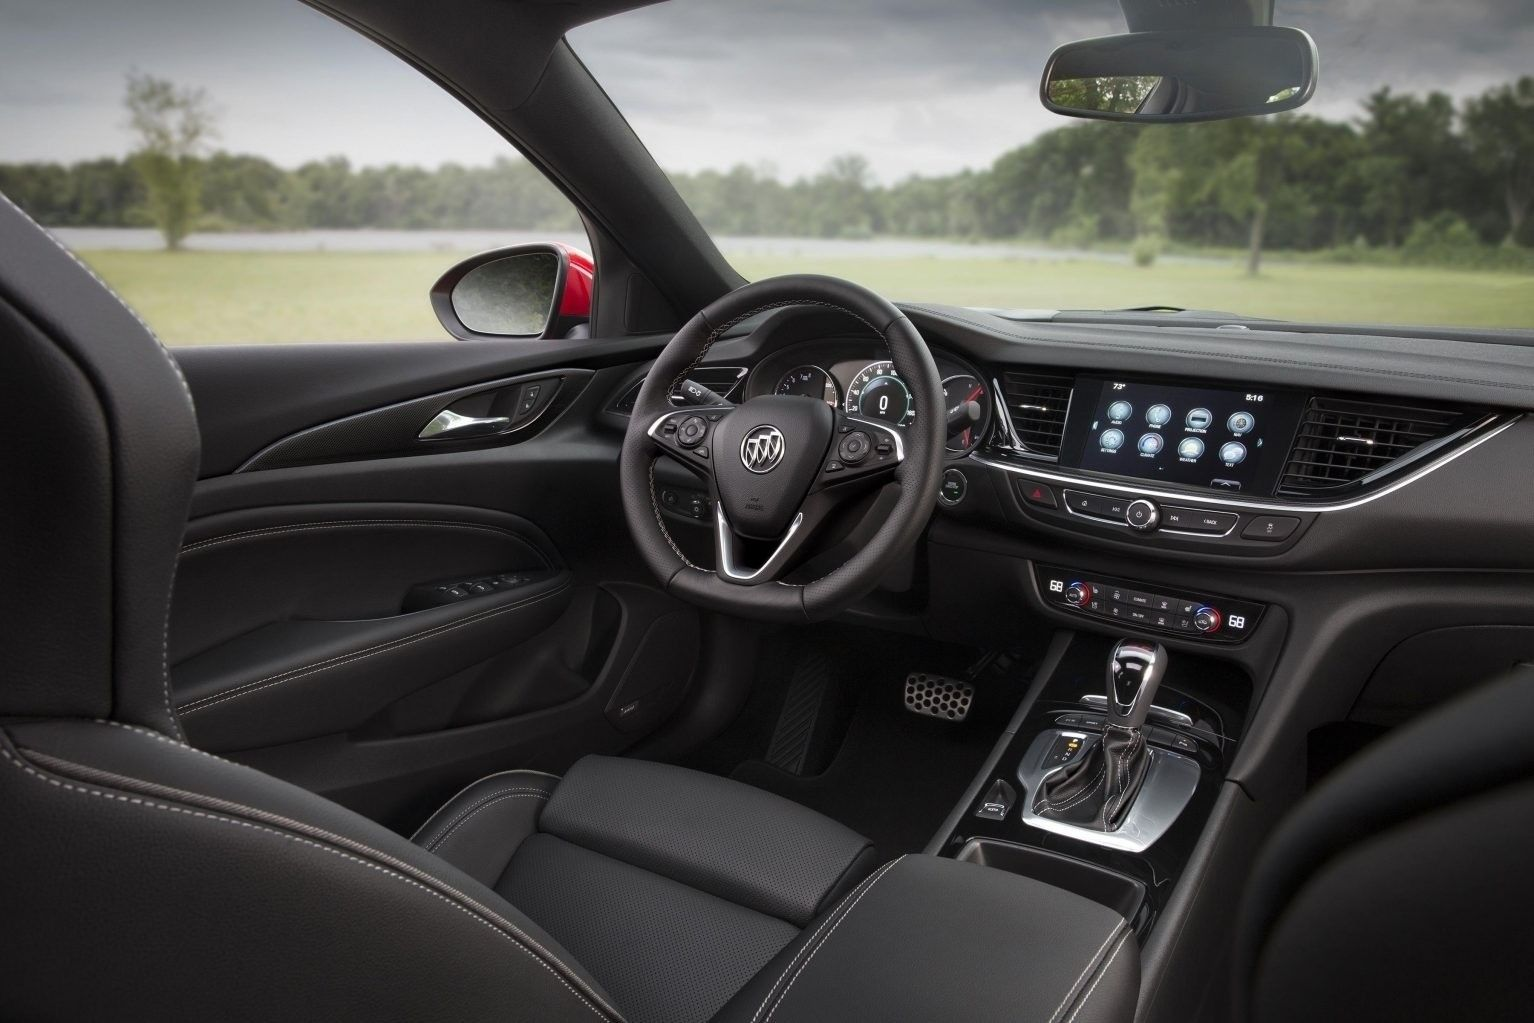 All 2019 Buick Verano Interior Exterior And Review Buick Regal